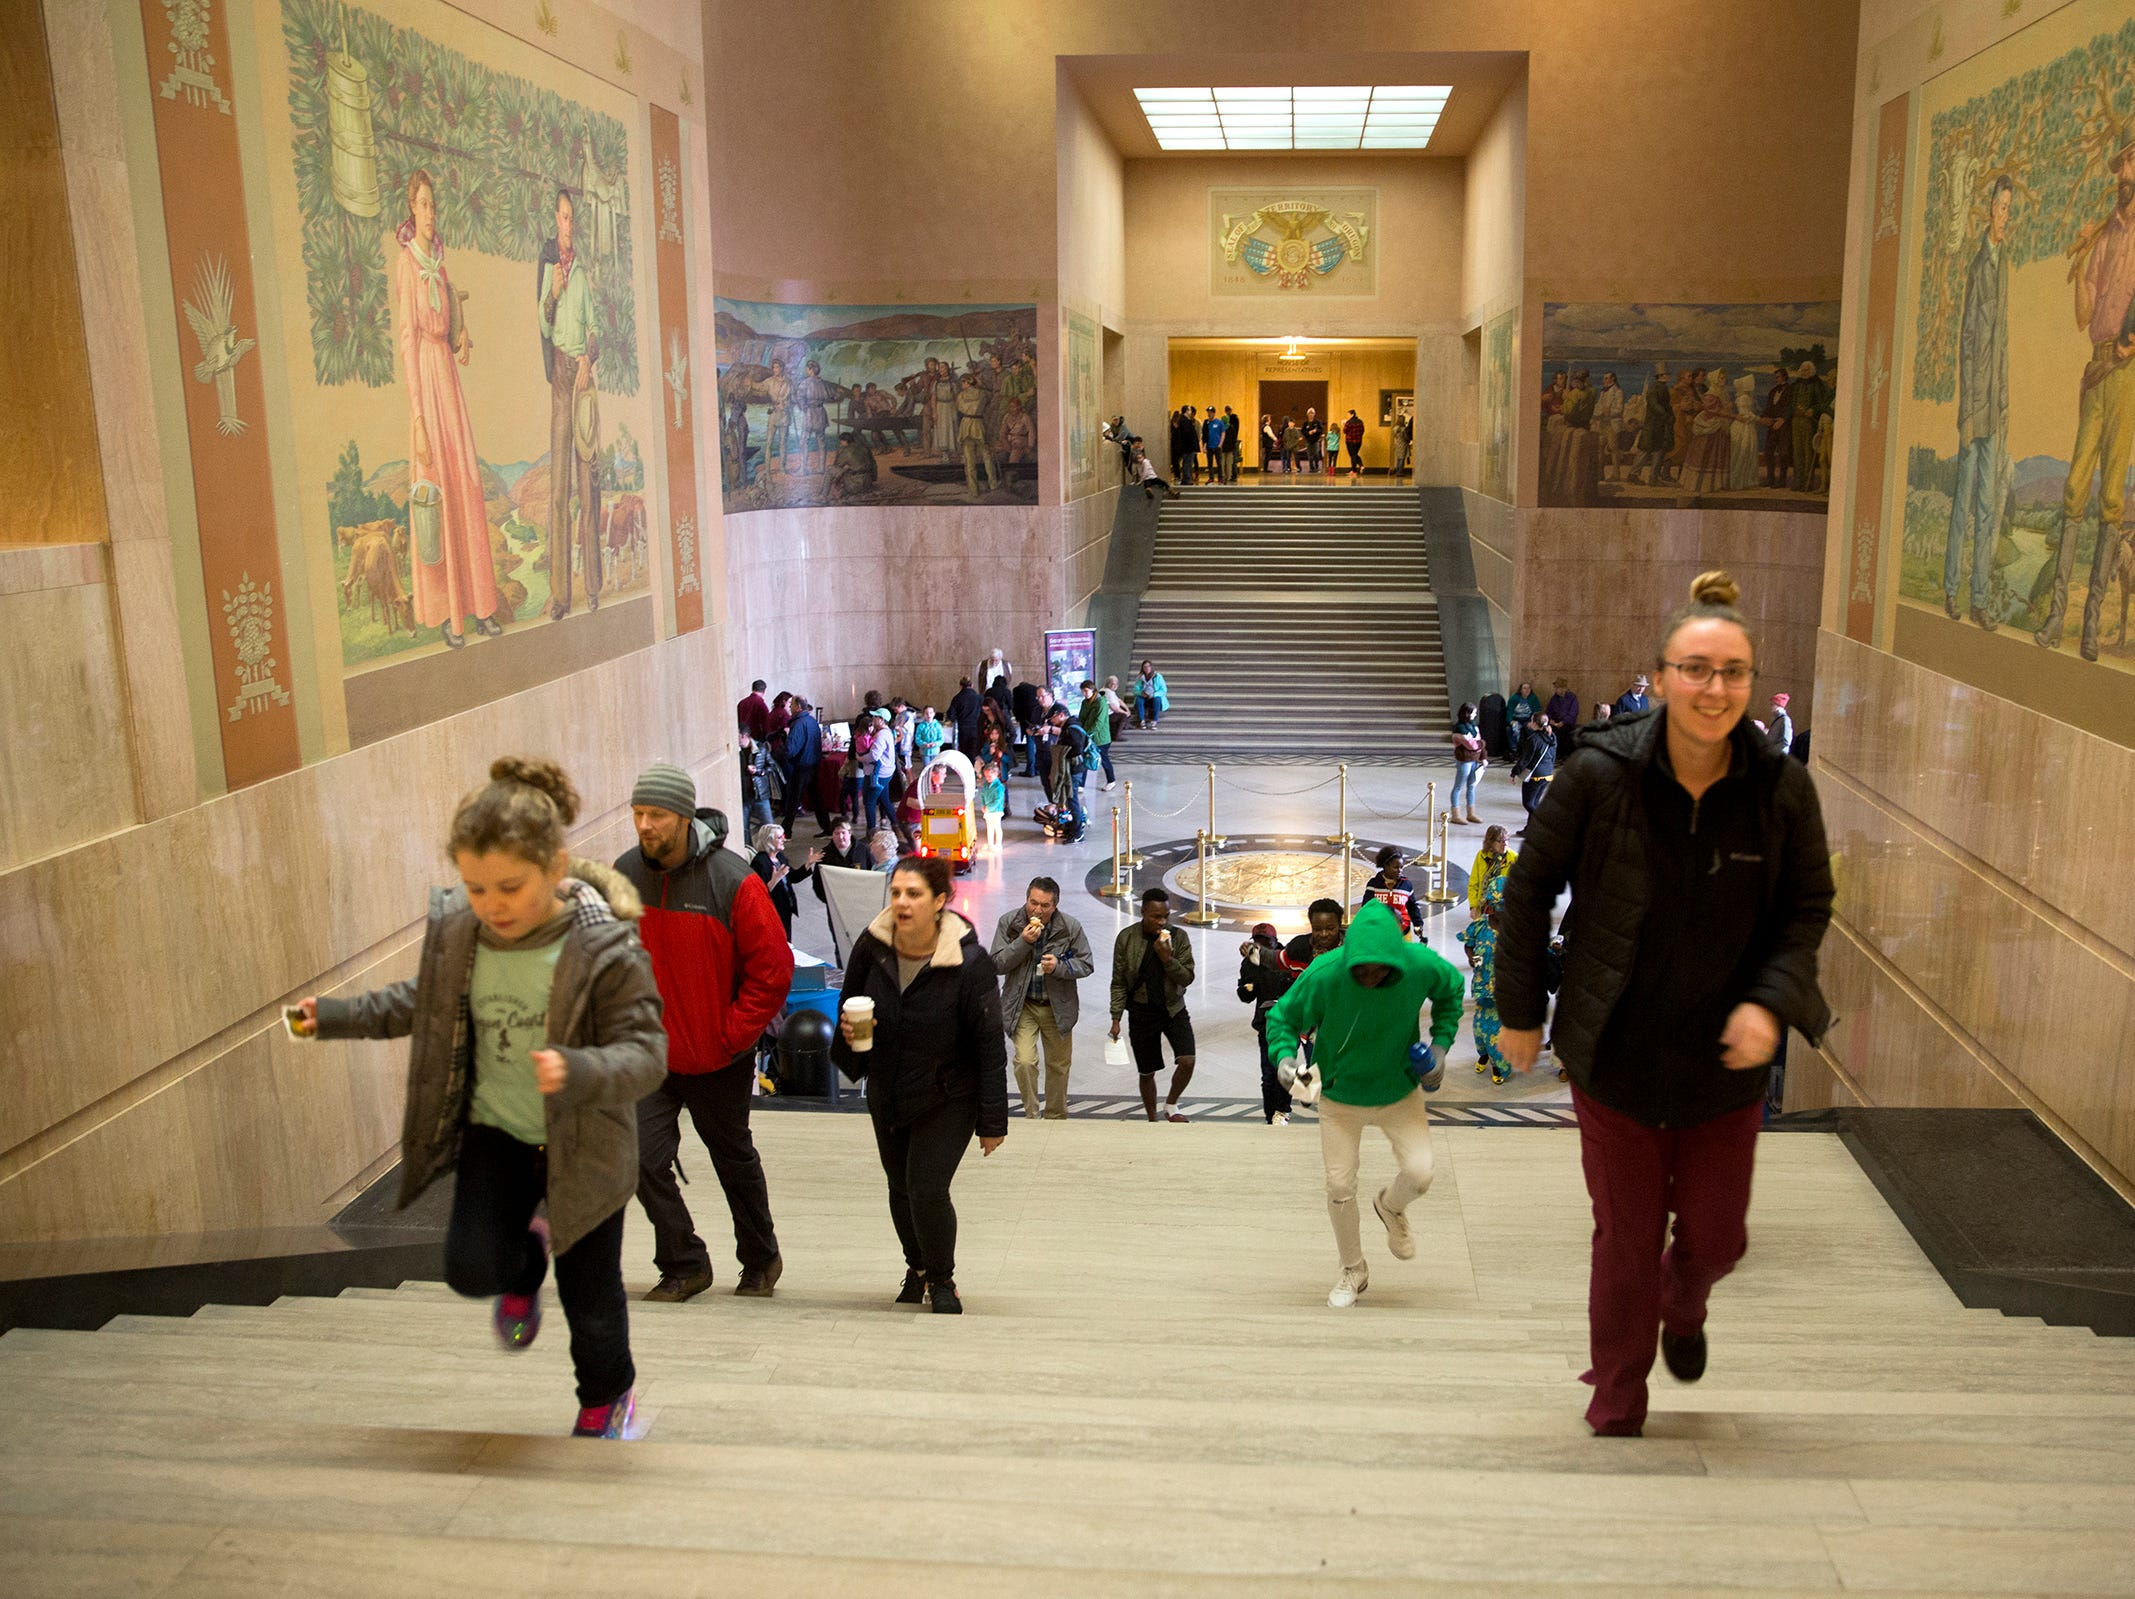 People rush up the steps to the Senate Chambers during Oregon's 160th Birthday Celebration at the Oregon State Capitol in Salem on Saturday, Feb. 16, 2019.